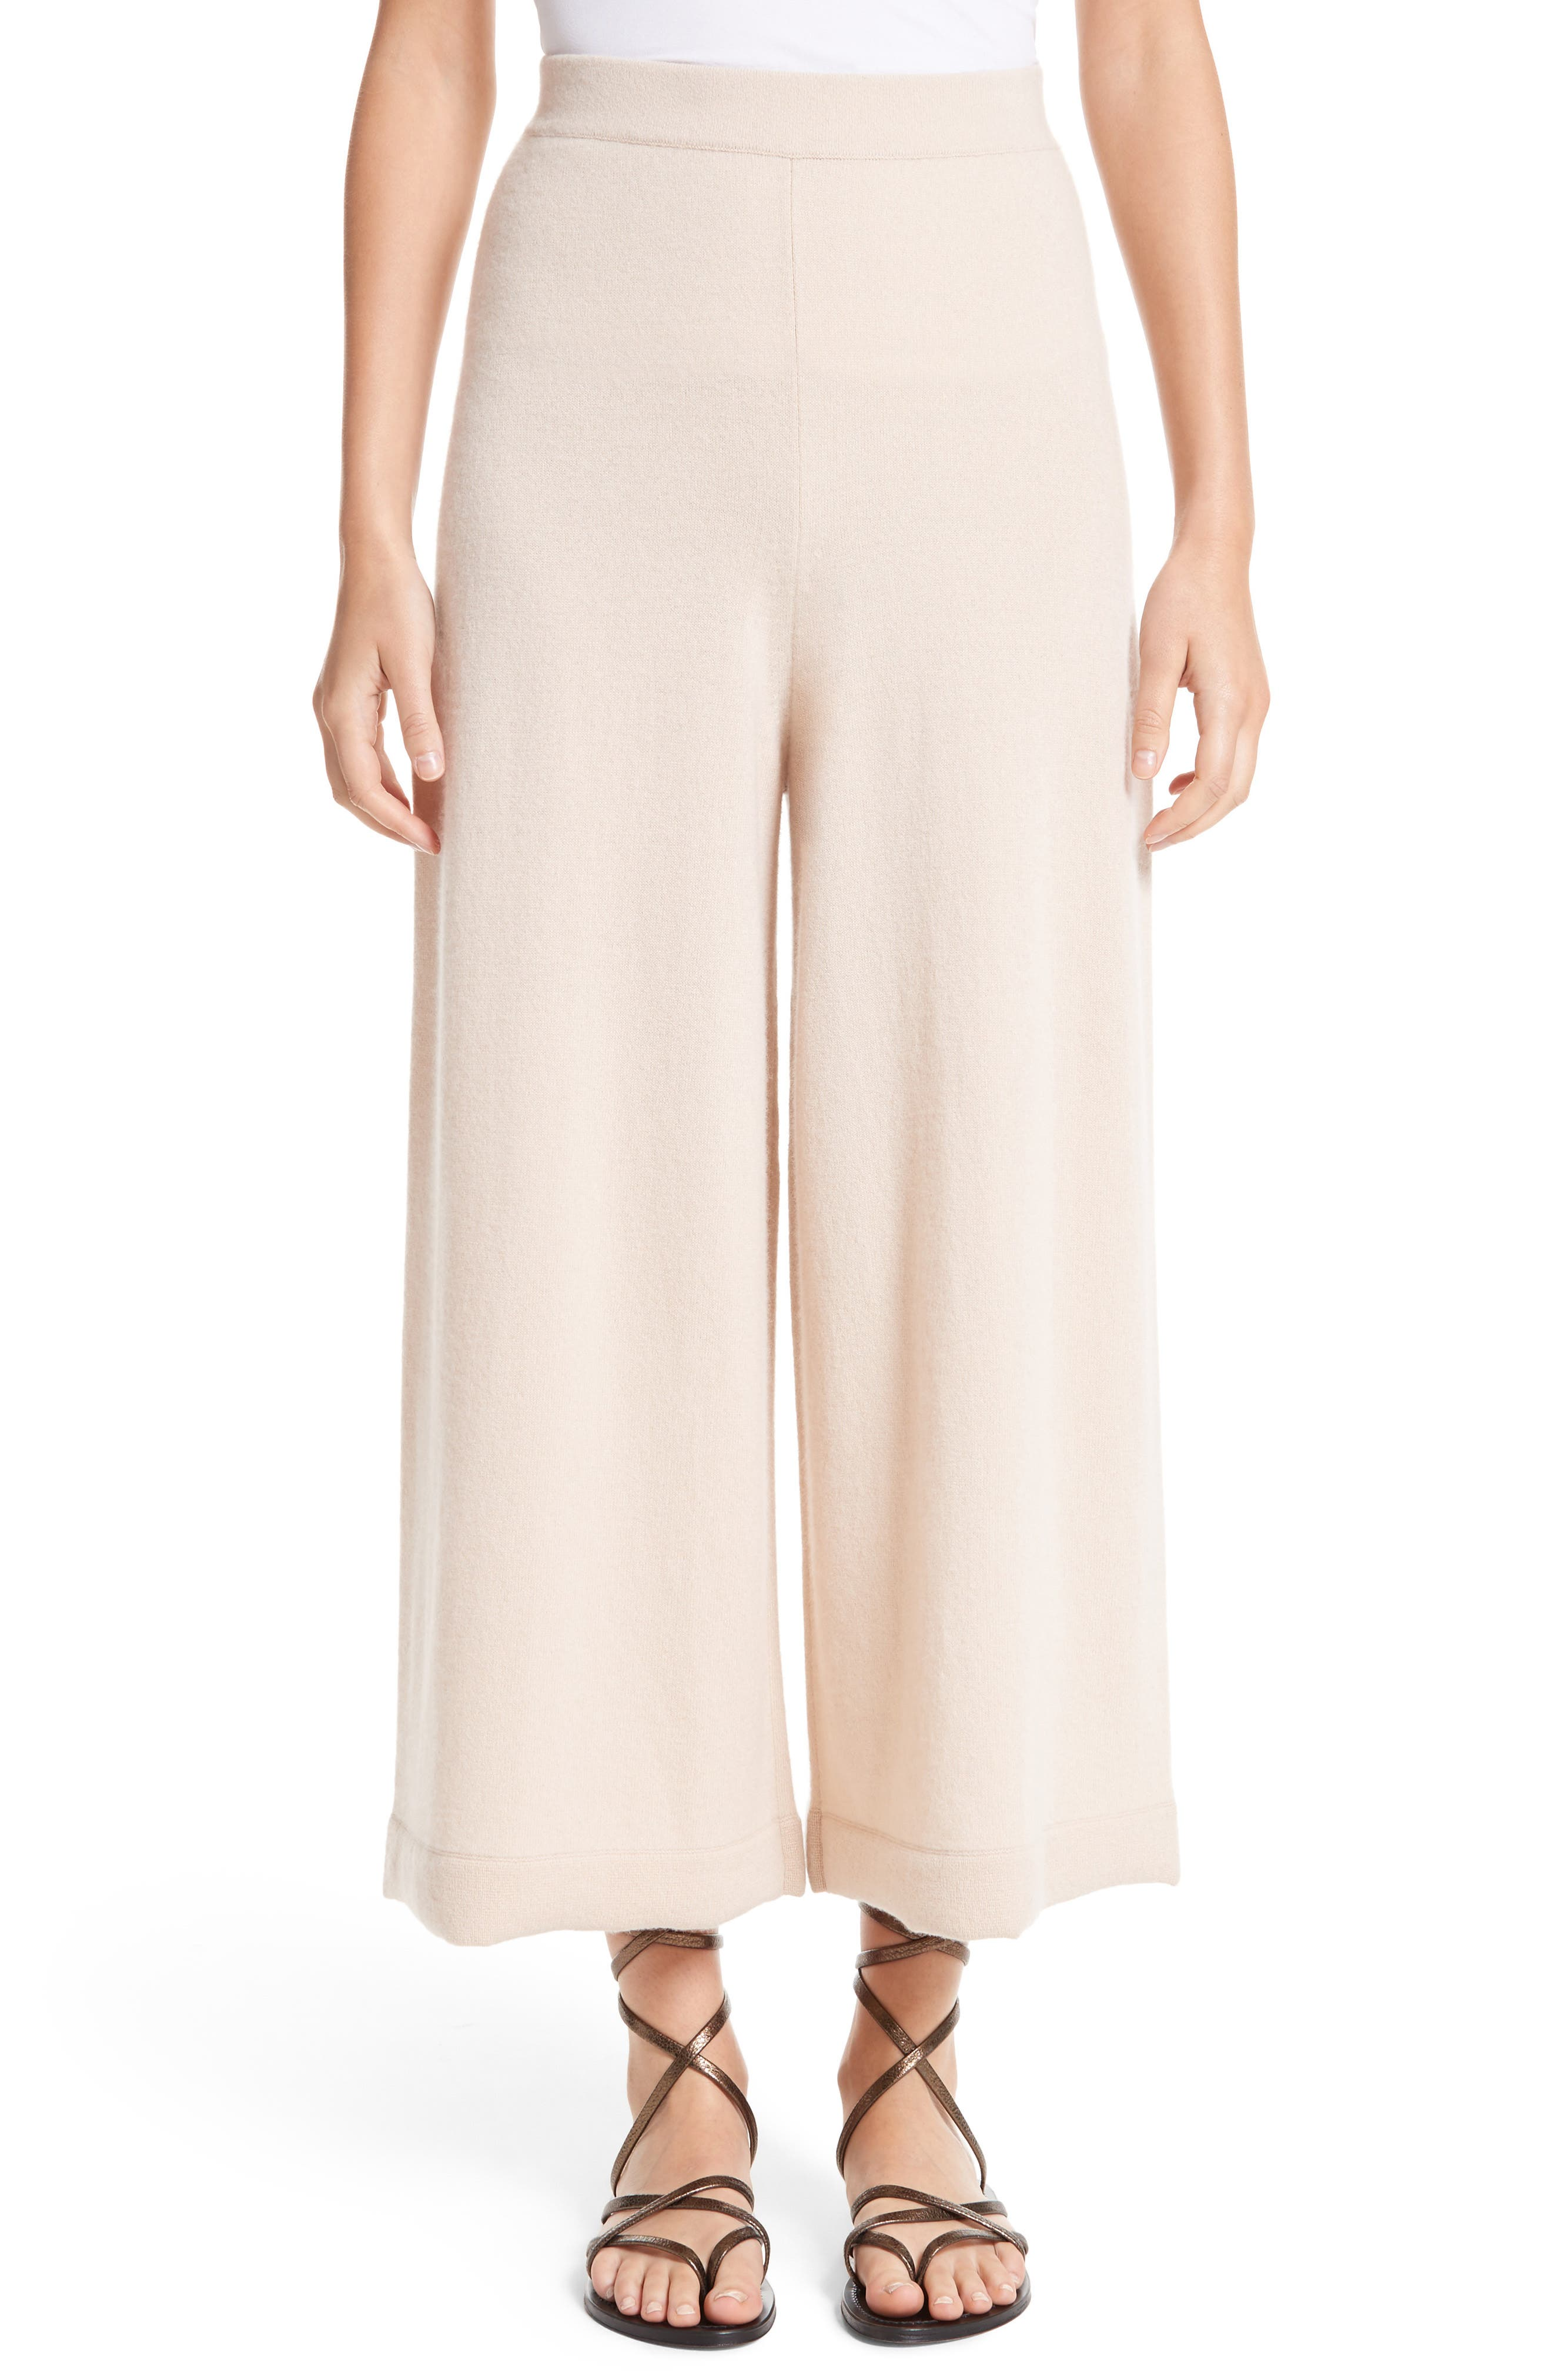 Cashmere Crop Wide Leg Pants,                             Main thumbnail 1, color,                             250